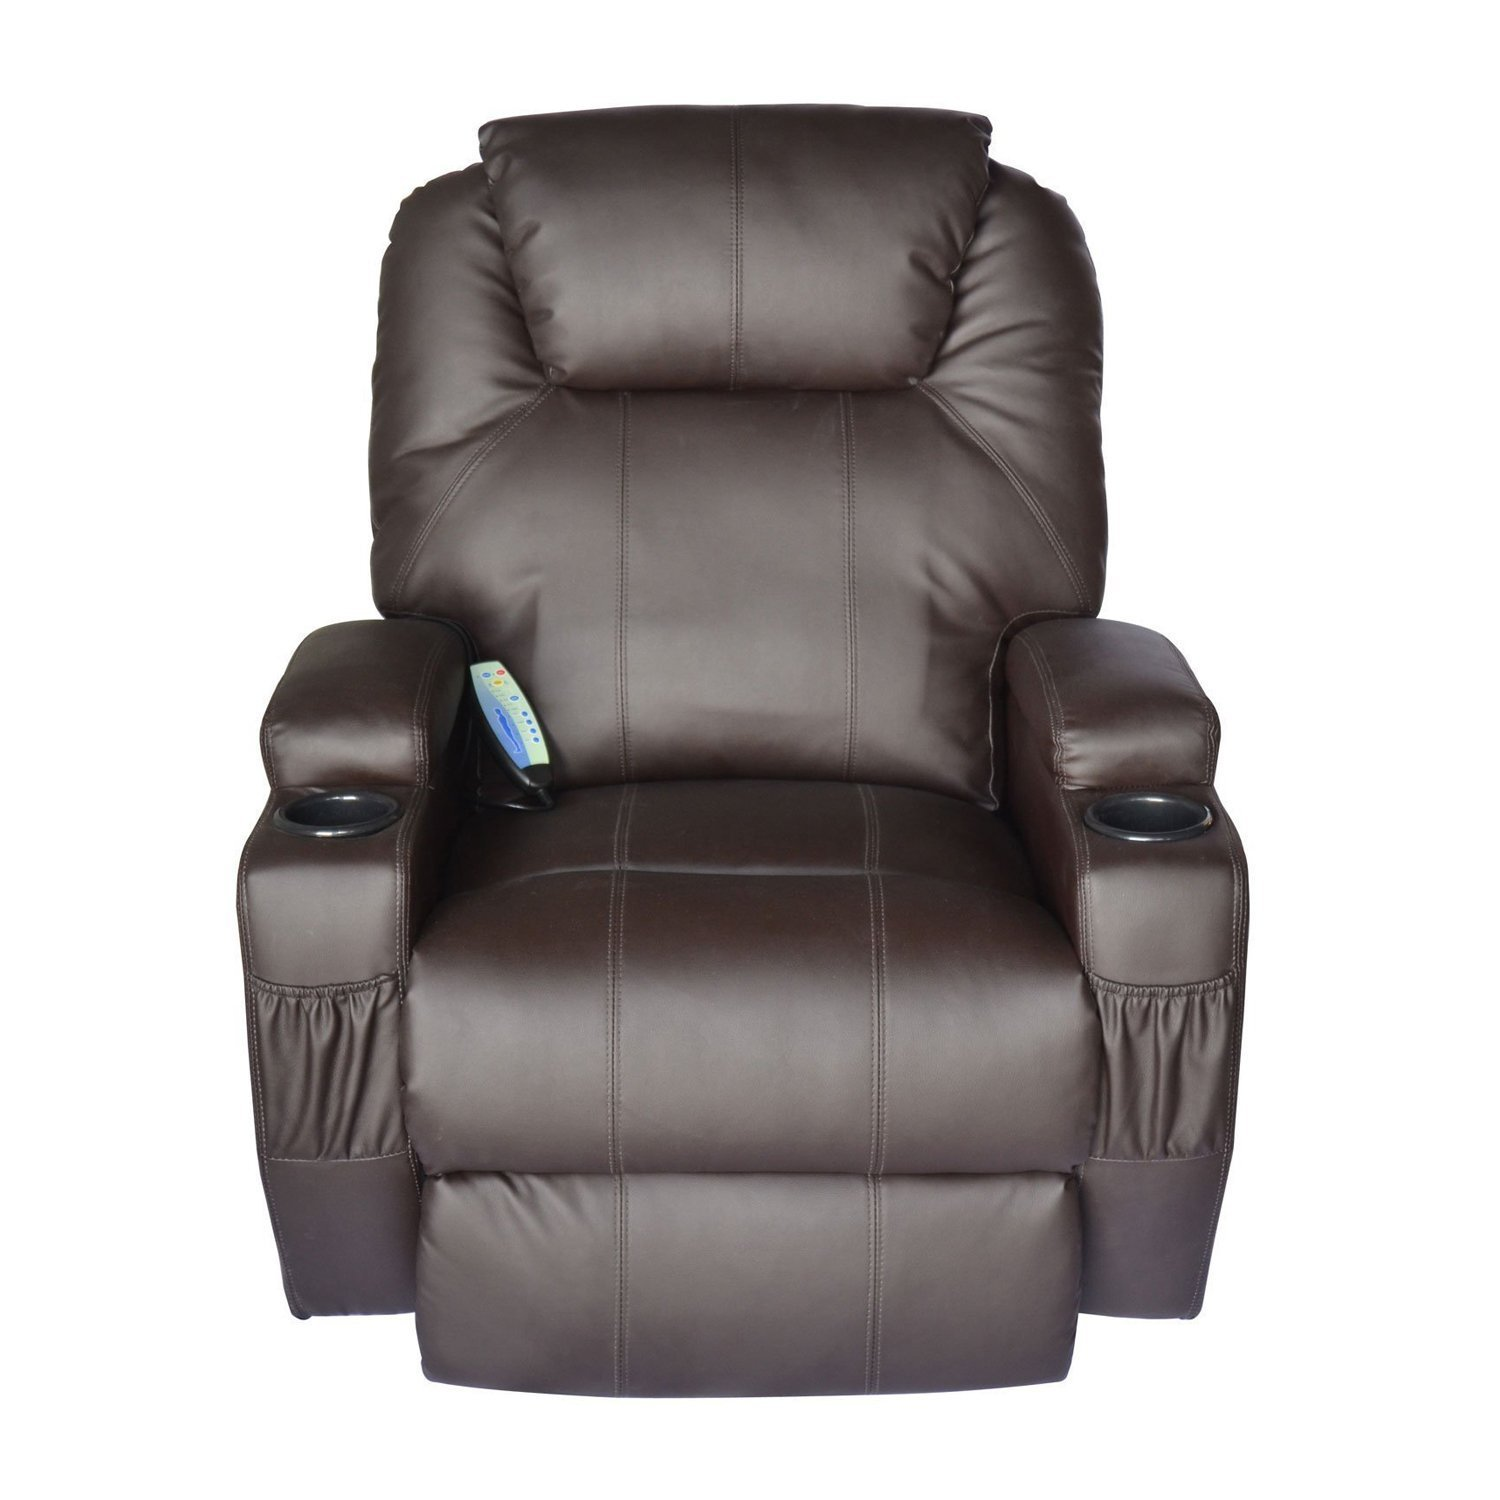 Amazon Tenive Deluxe Pu Leather 360 Degree Swivel Rocker